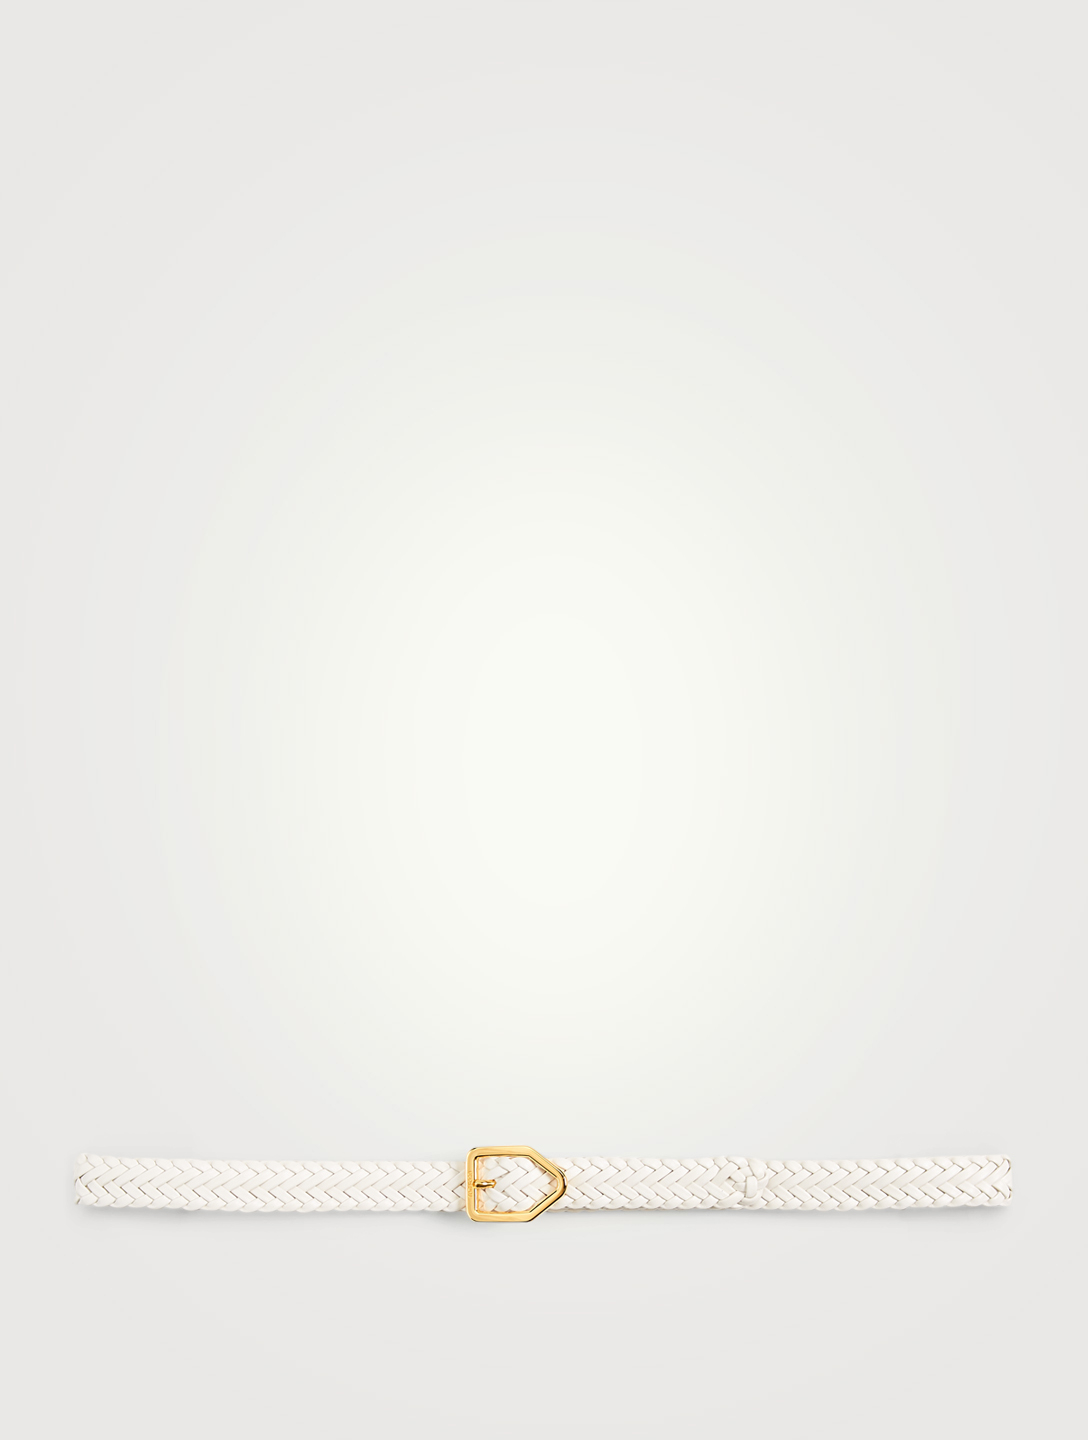 TOM FORD Lozenge Buckle Woven Leather Belt Men's White